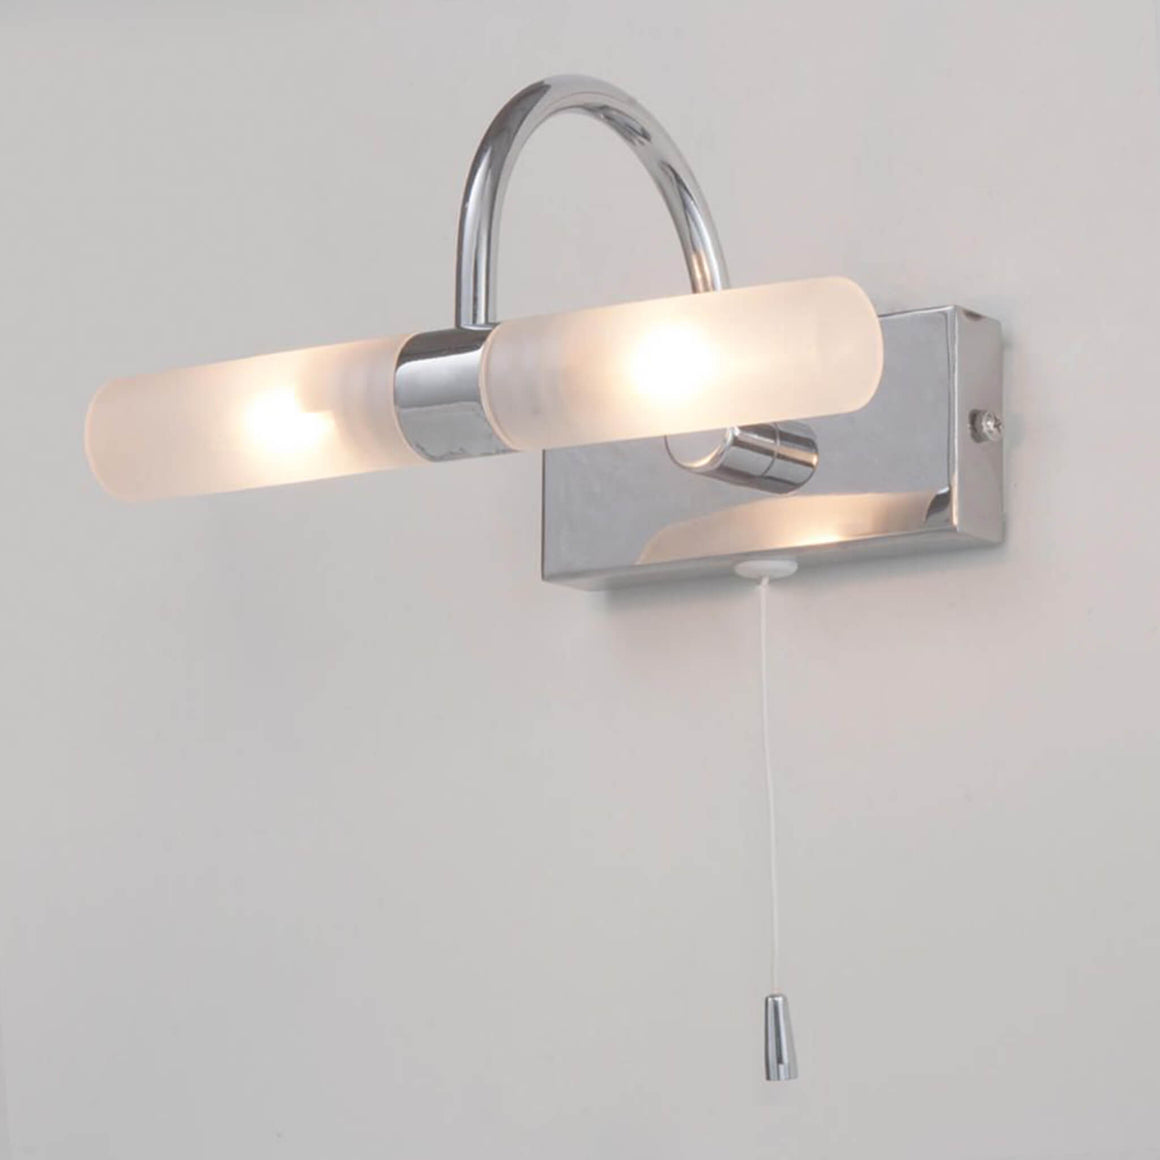 Forum Corvus Double Bathroom Wall Light - Bathroom - Lampsy